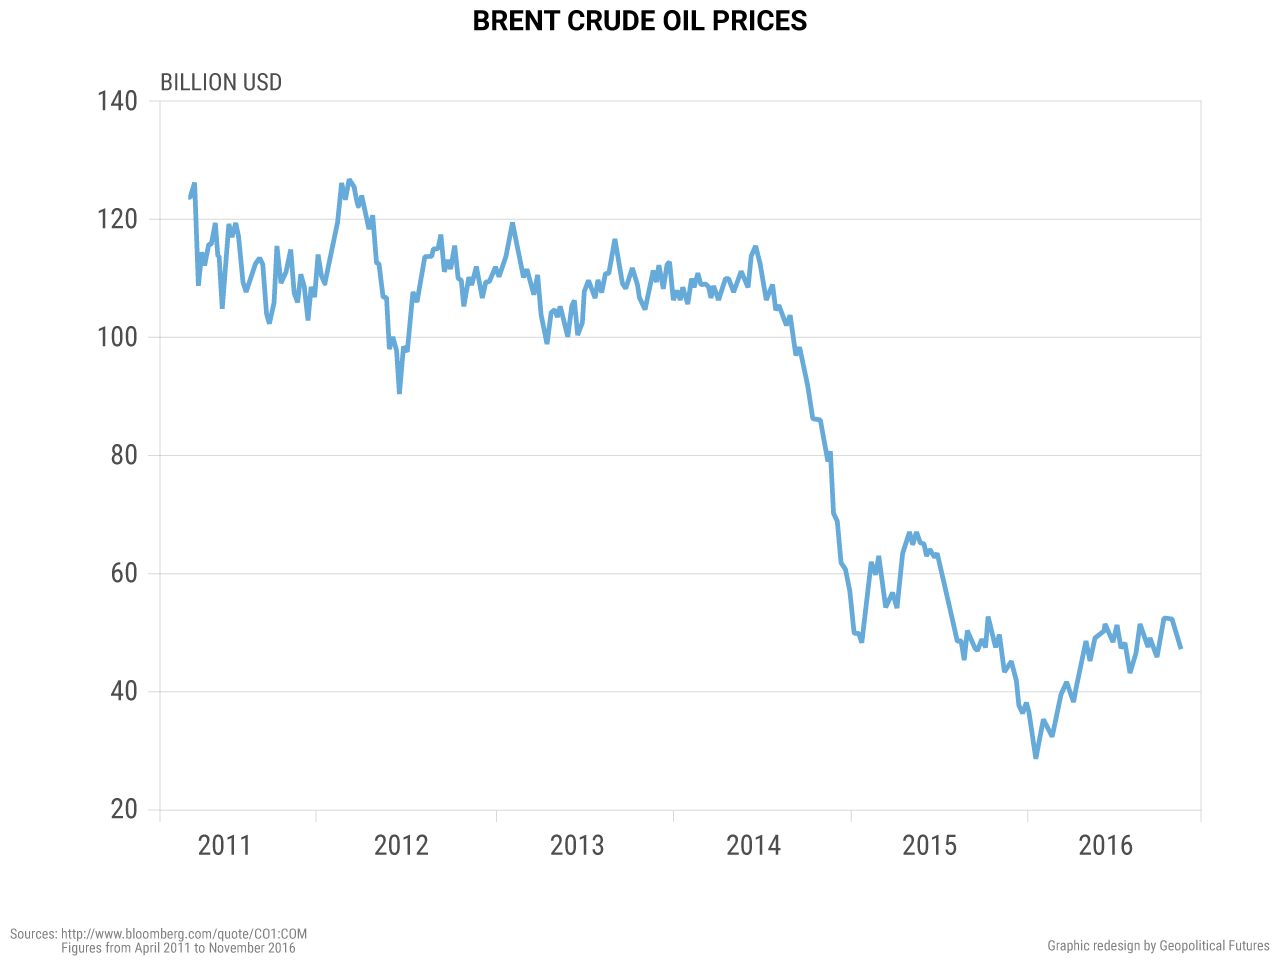 Brent Crude Oil Prices